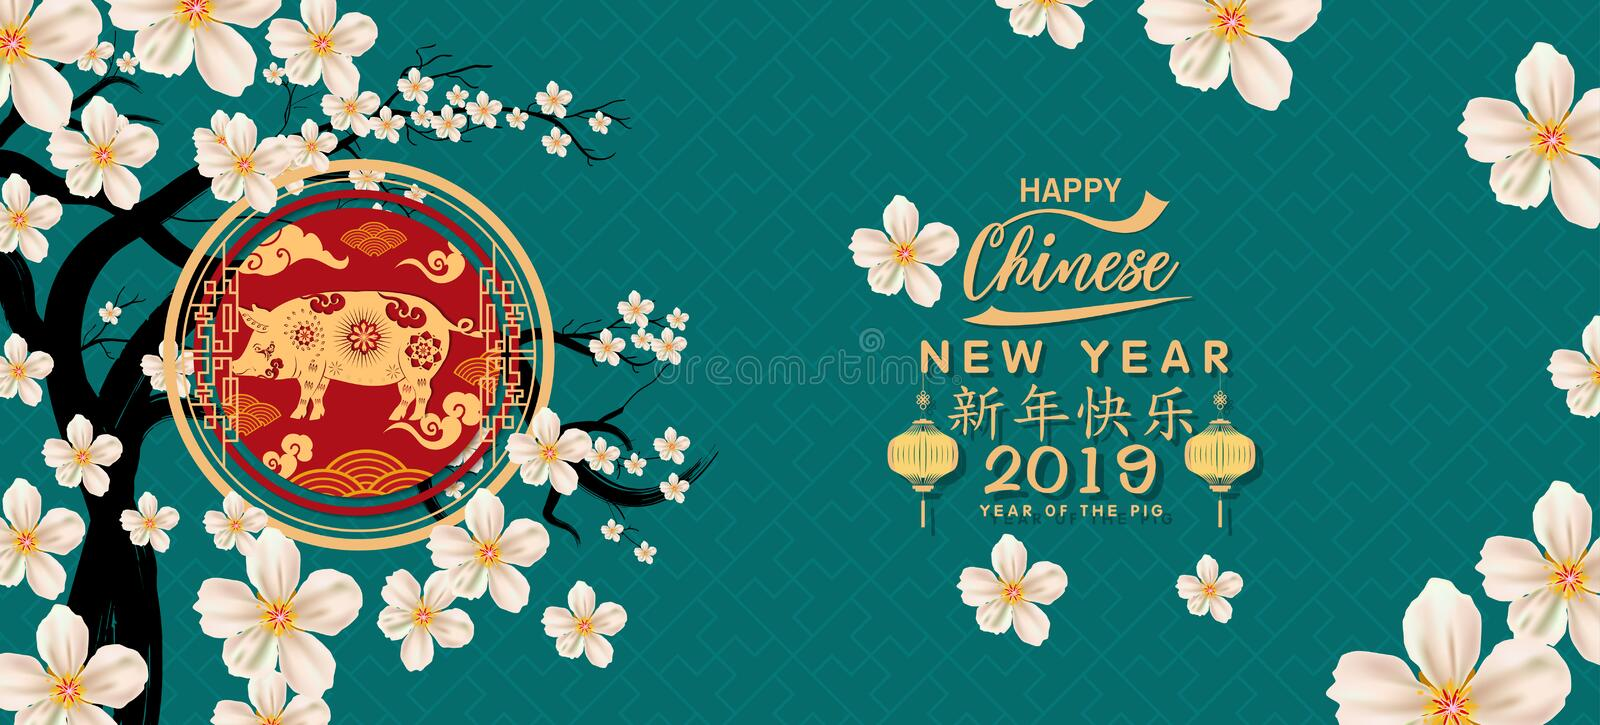 Set Banner Happy Chinese New Year 2019, Year of the Pig. Lunar new year. Chinese characters mean Happy New Year vector illustration